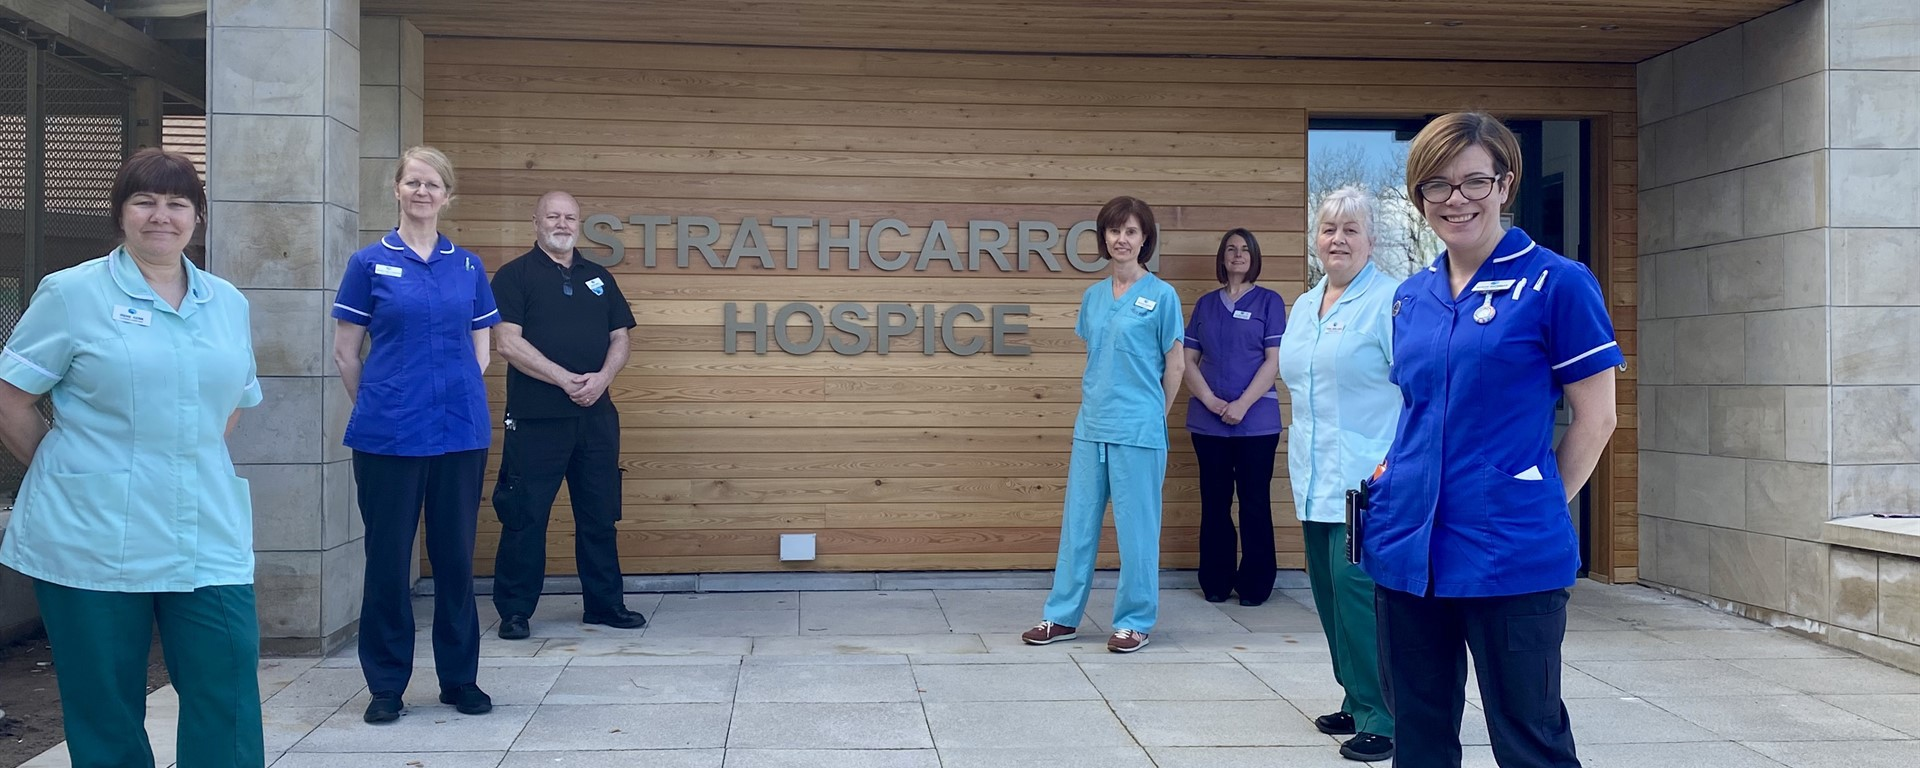 Celebrating 40 years of Strathcarron Hospice